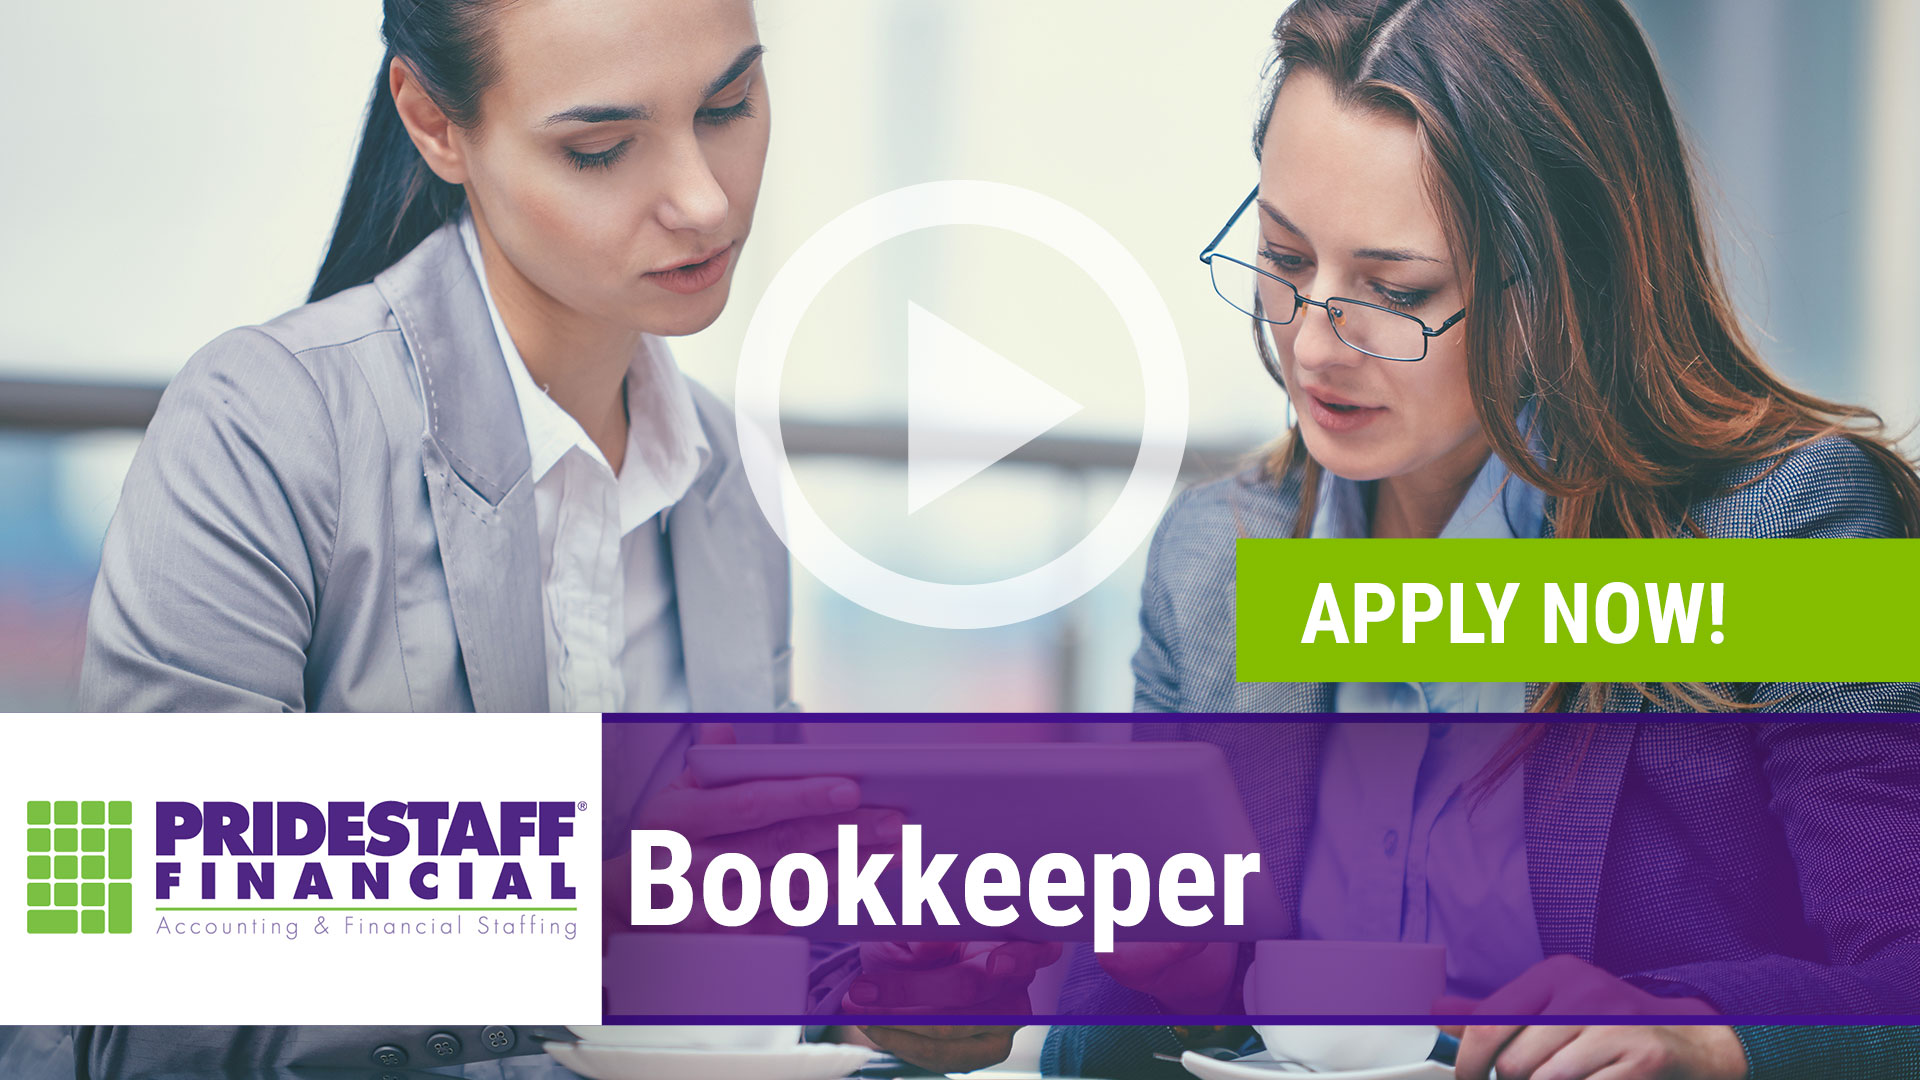 Watch our careers video for available job opening Bookkeeper in North Dallas, Texas